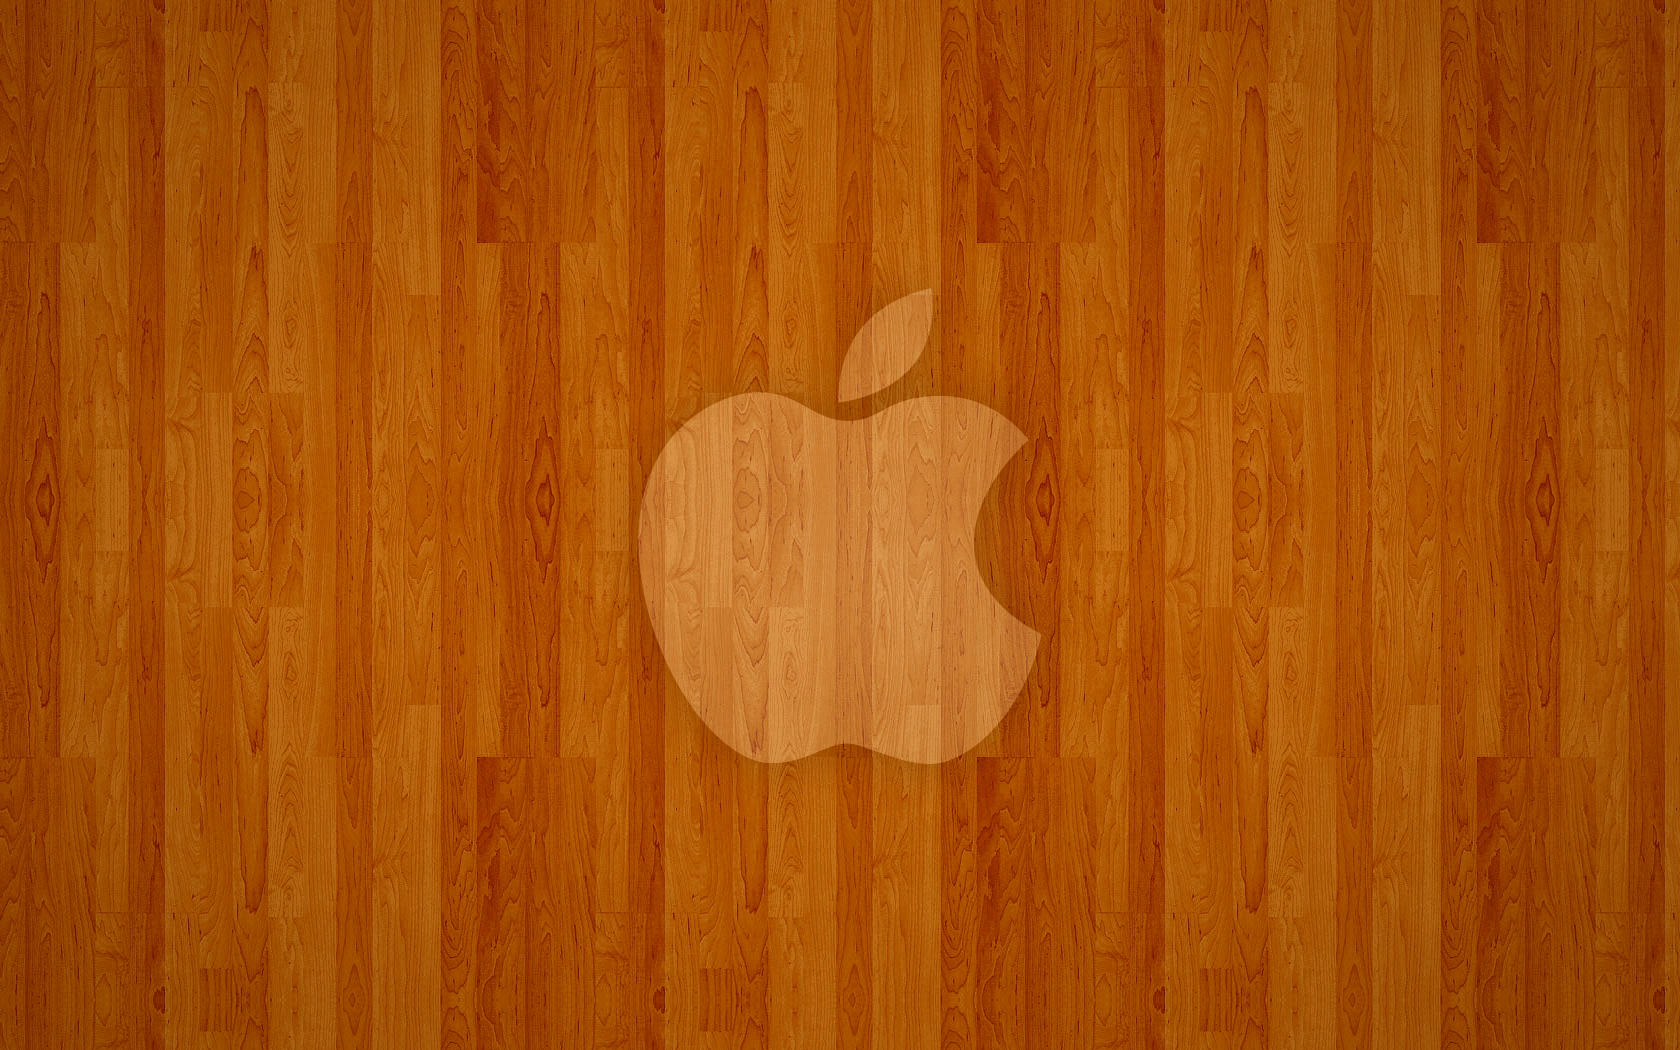 Wooden Apple v2 by JayXdesk